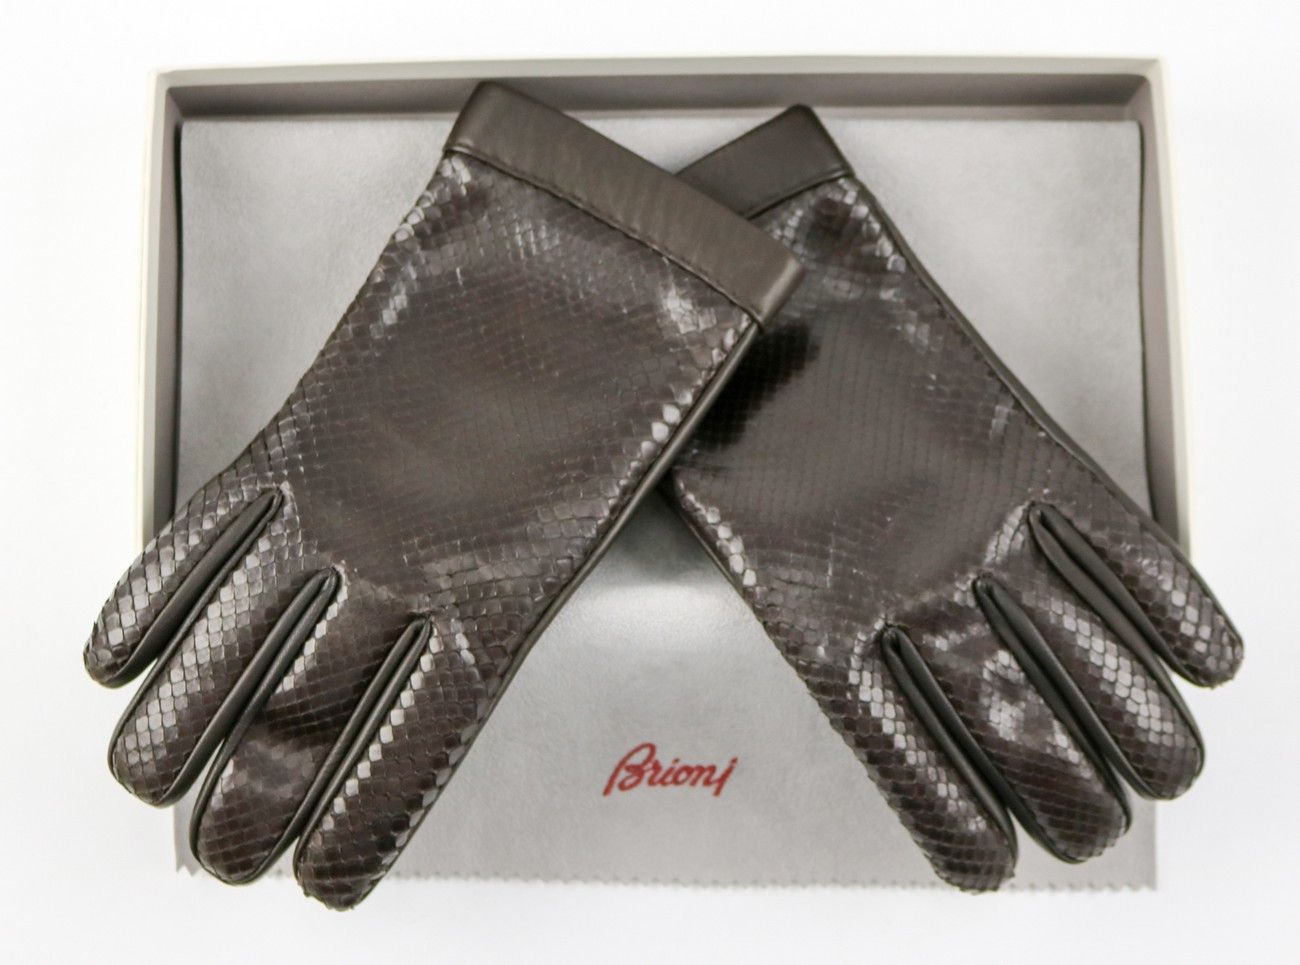 Love the trim on these #Brioni #leather #gloves!  |  Find yours! http://www.frieschskys.com/shop-brioni  | #frieschskys #mensfashion #fashion #mensstyle #style #moda #menswear #dapper #stylish #MadeInItaly #brown